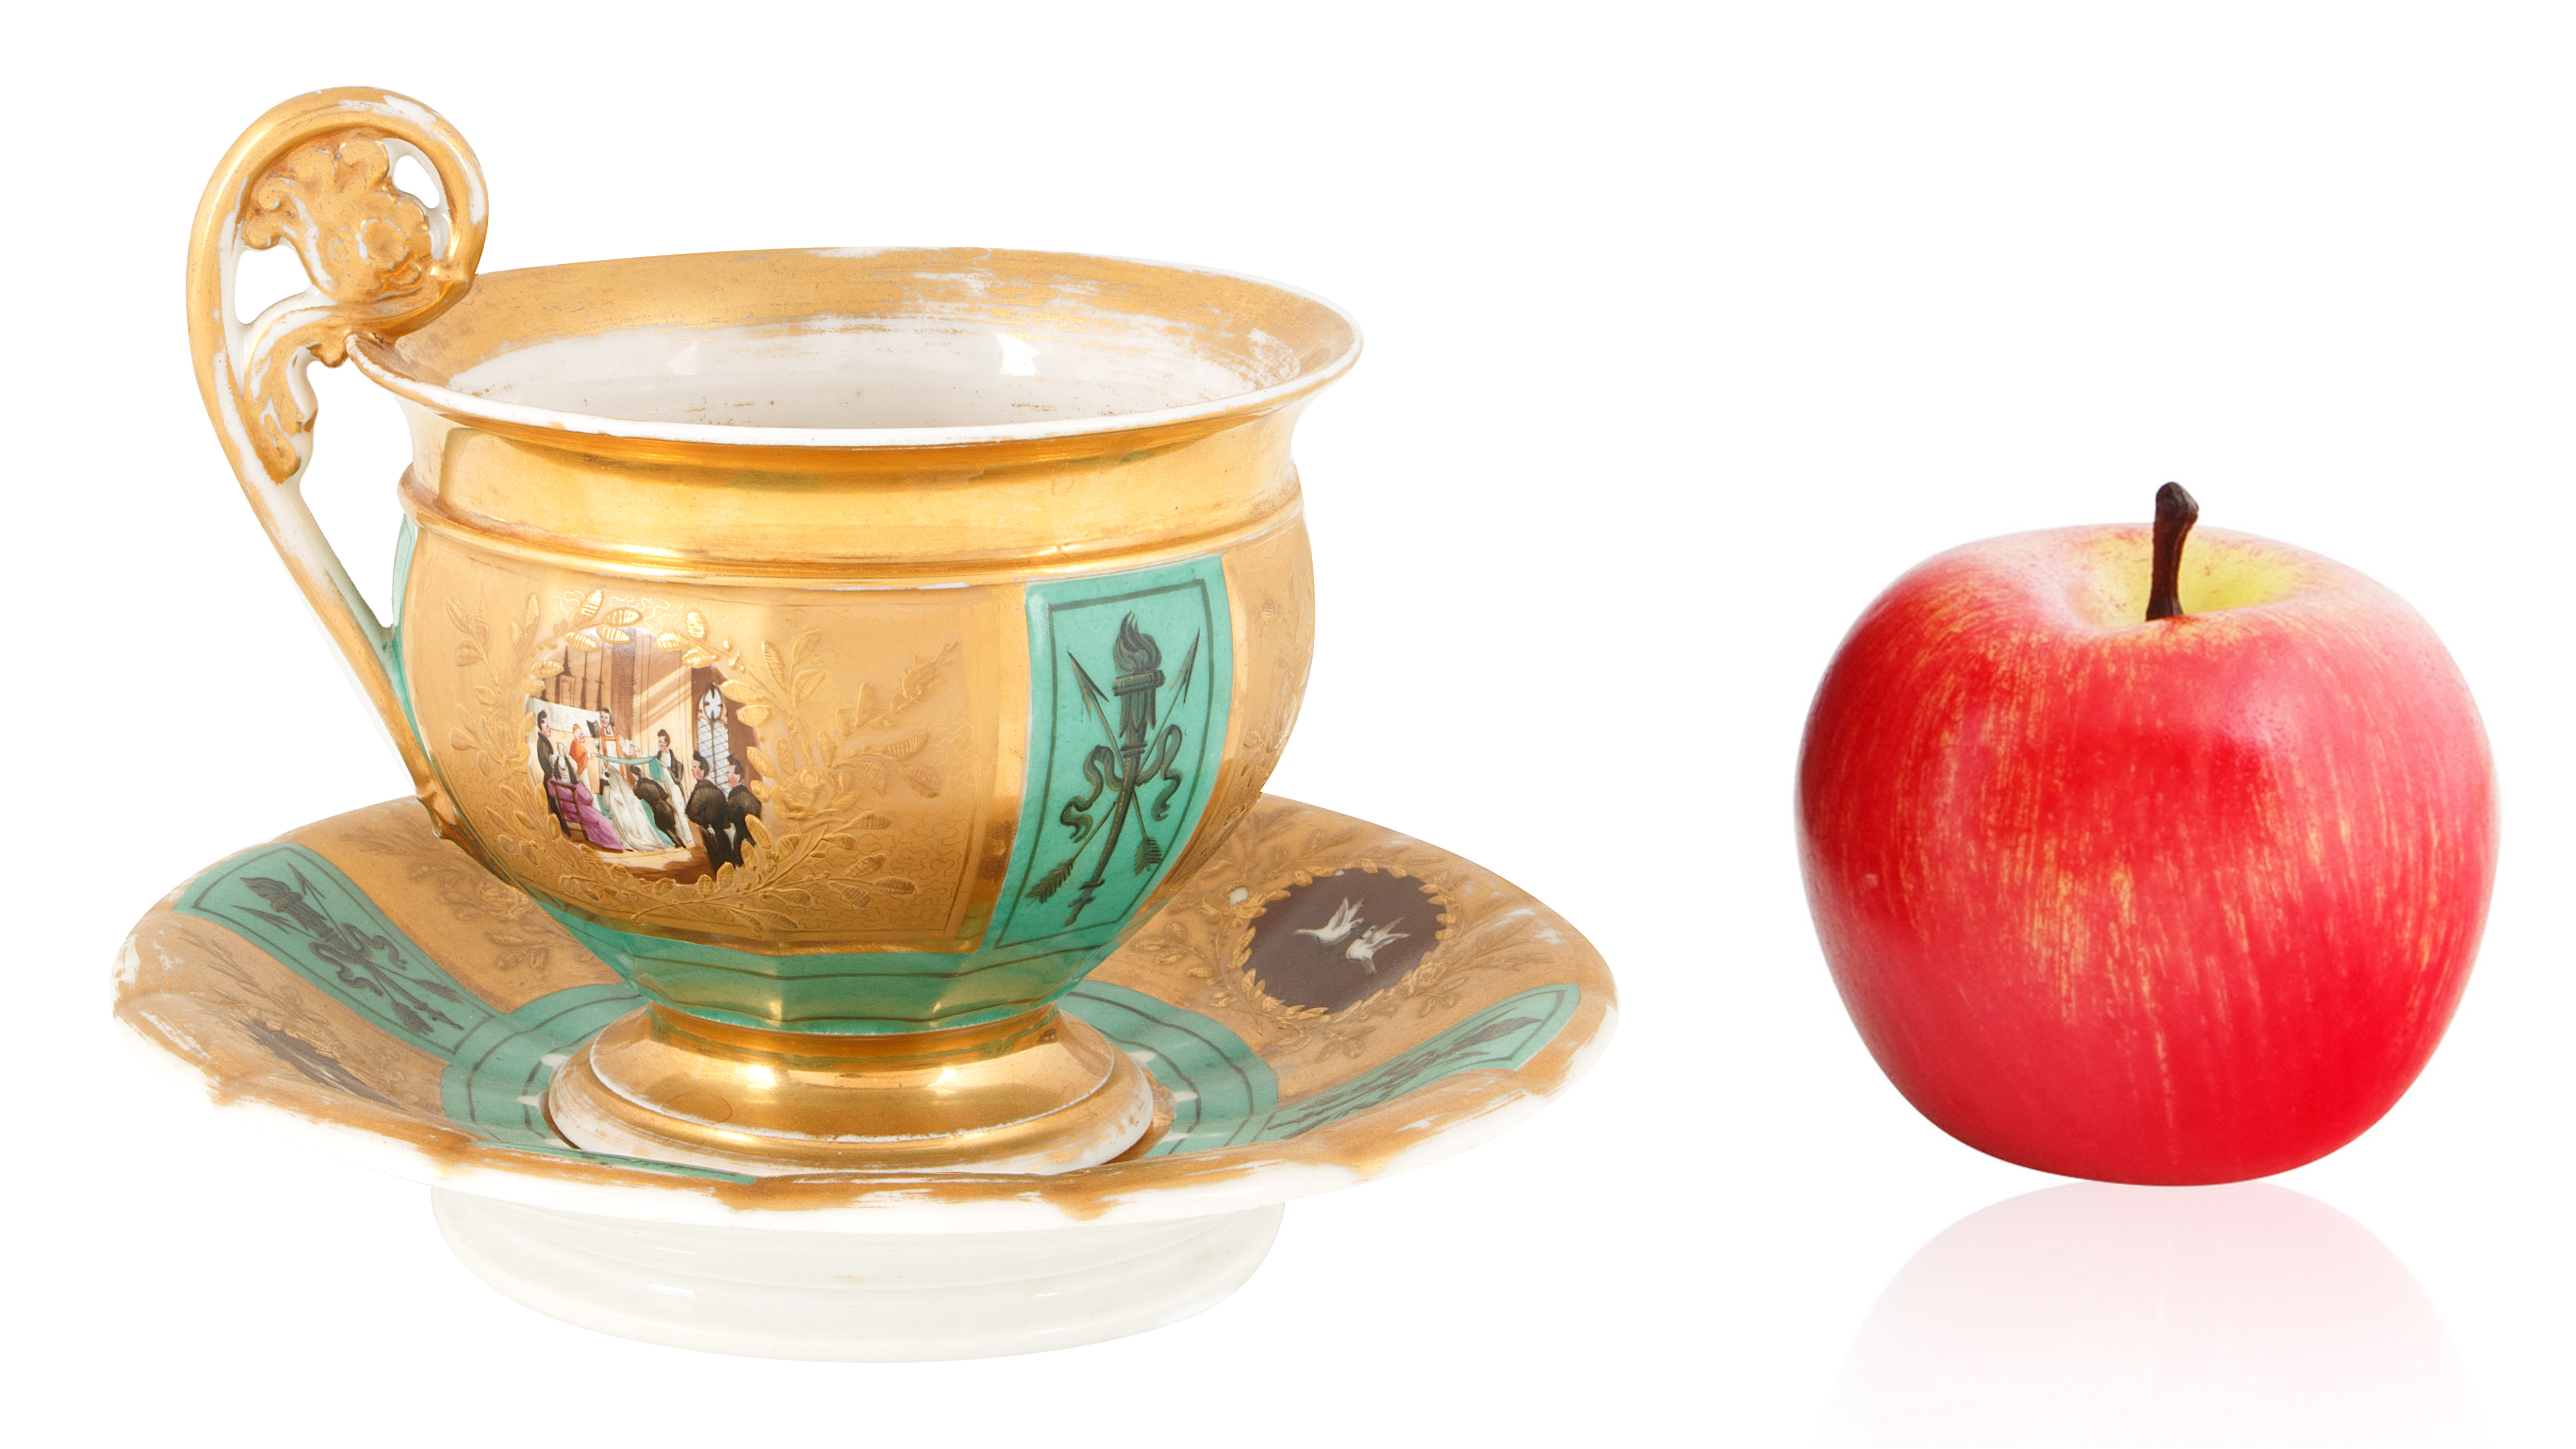 19TH CENTURY GILT PORCELAIN TEA CUP AND SAUCER - Image 5 of 5